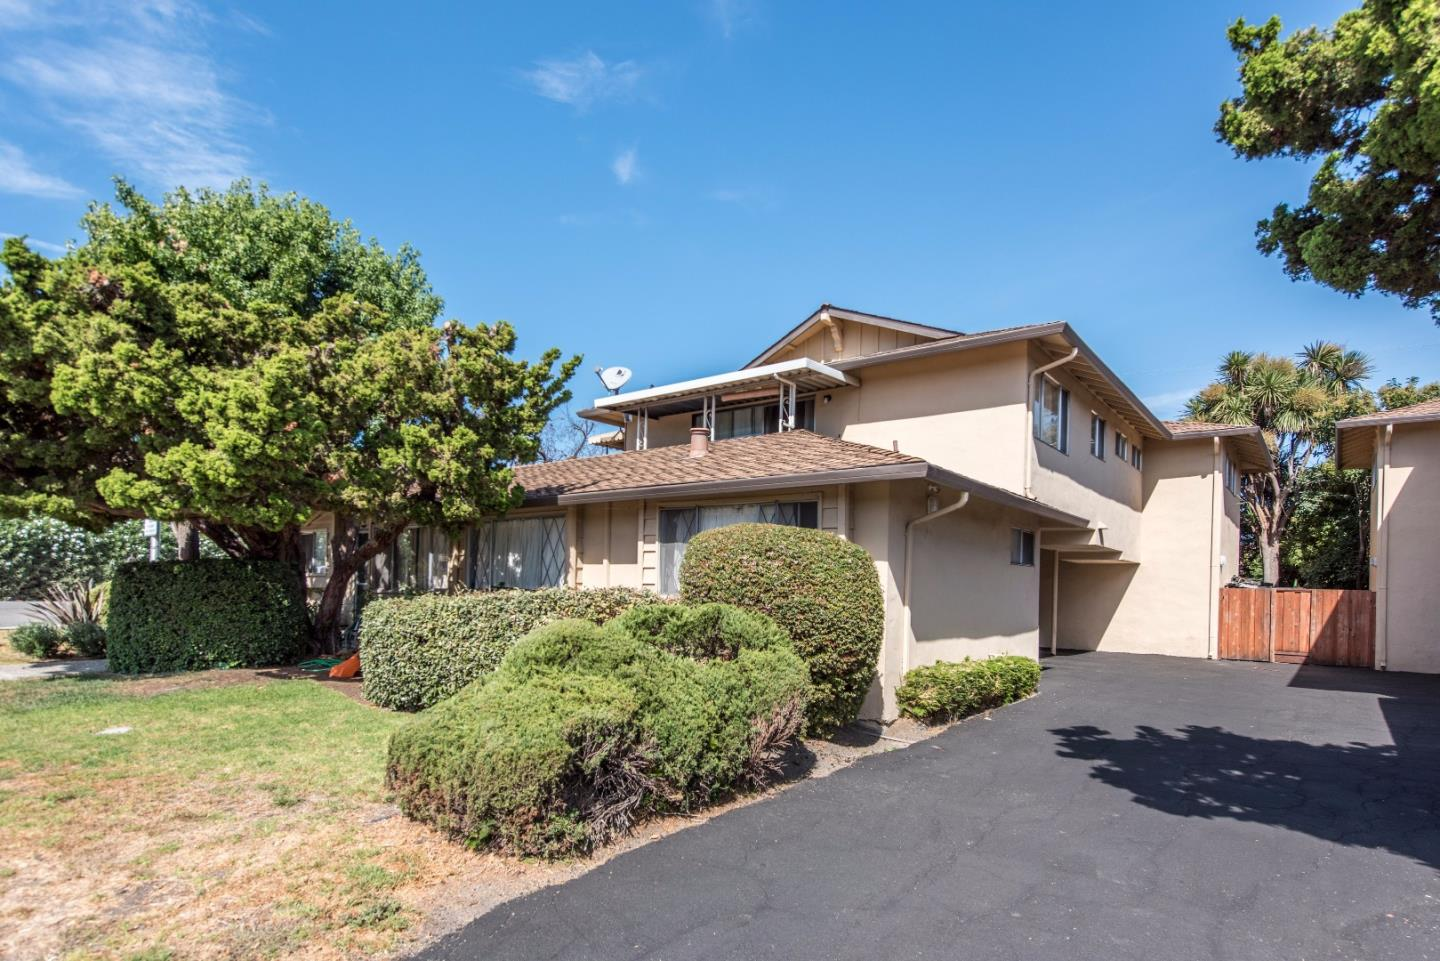 Multi-Family Home for Sale at 1295 Manchester Drive 1295 Manchester Drive Santa Clara, California 95050 United States